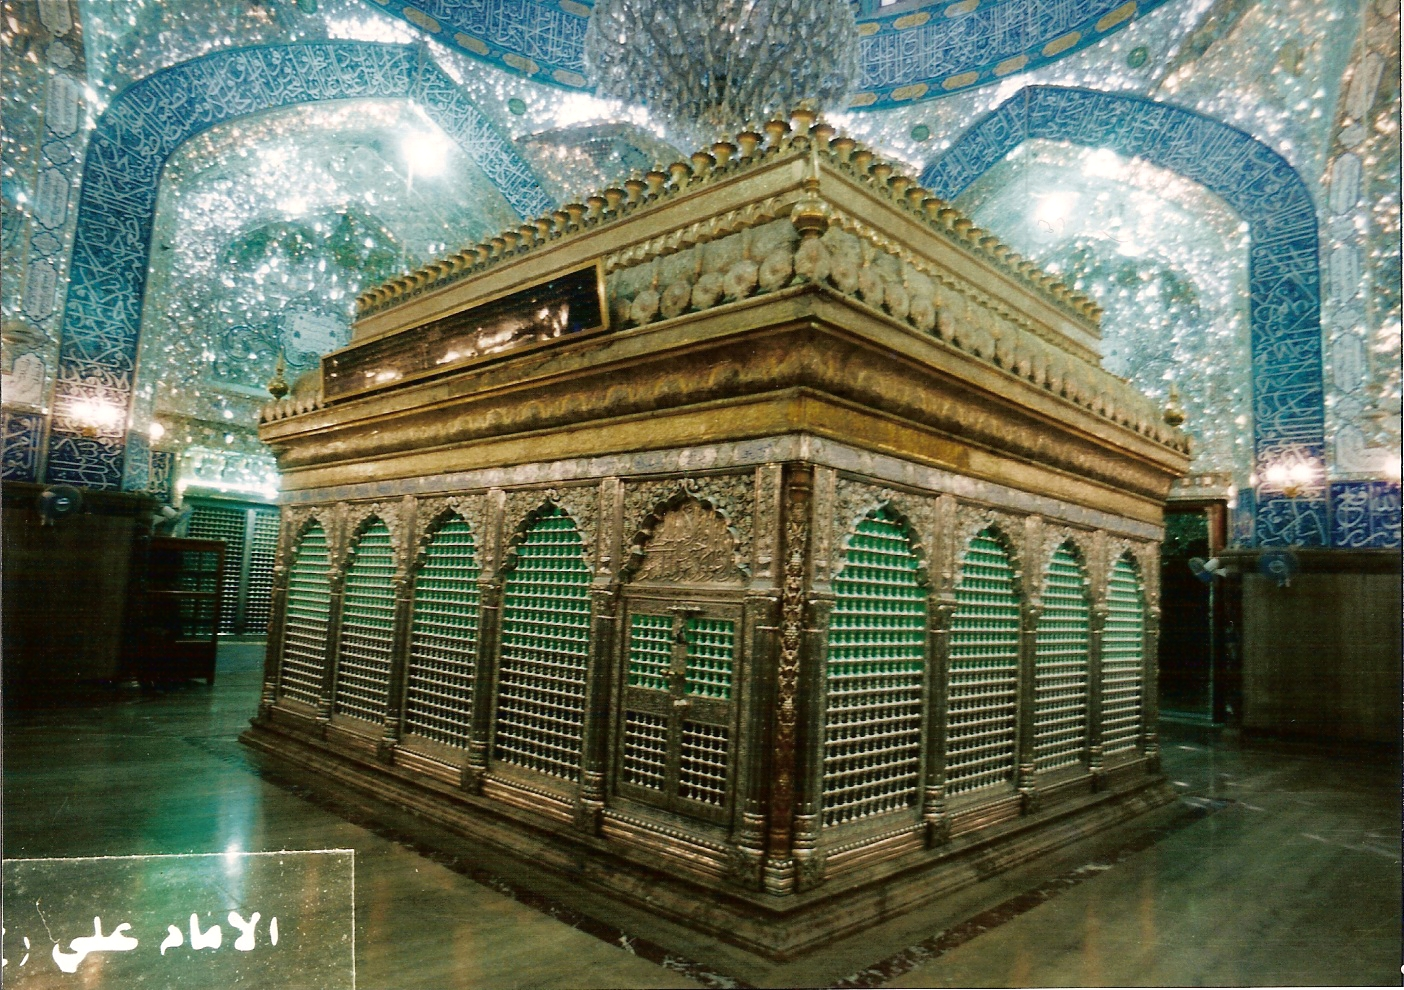 Maula Ali Shrine Wallpaper: Ramadan 2016: 9 Questions About The Muslim Holy Month You